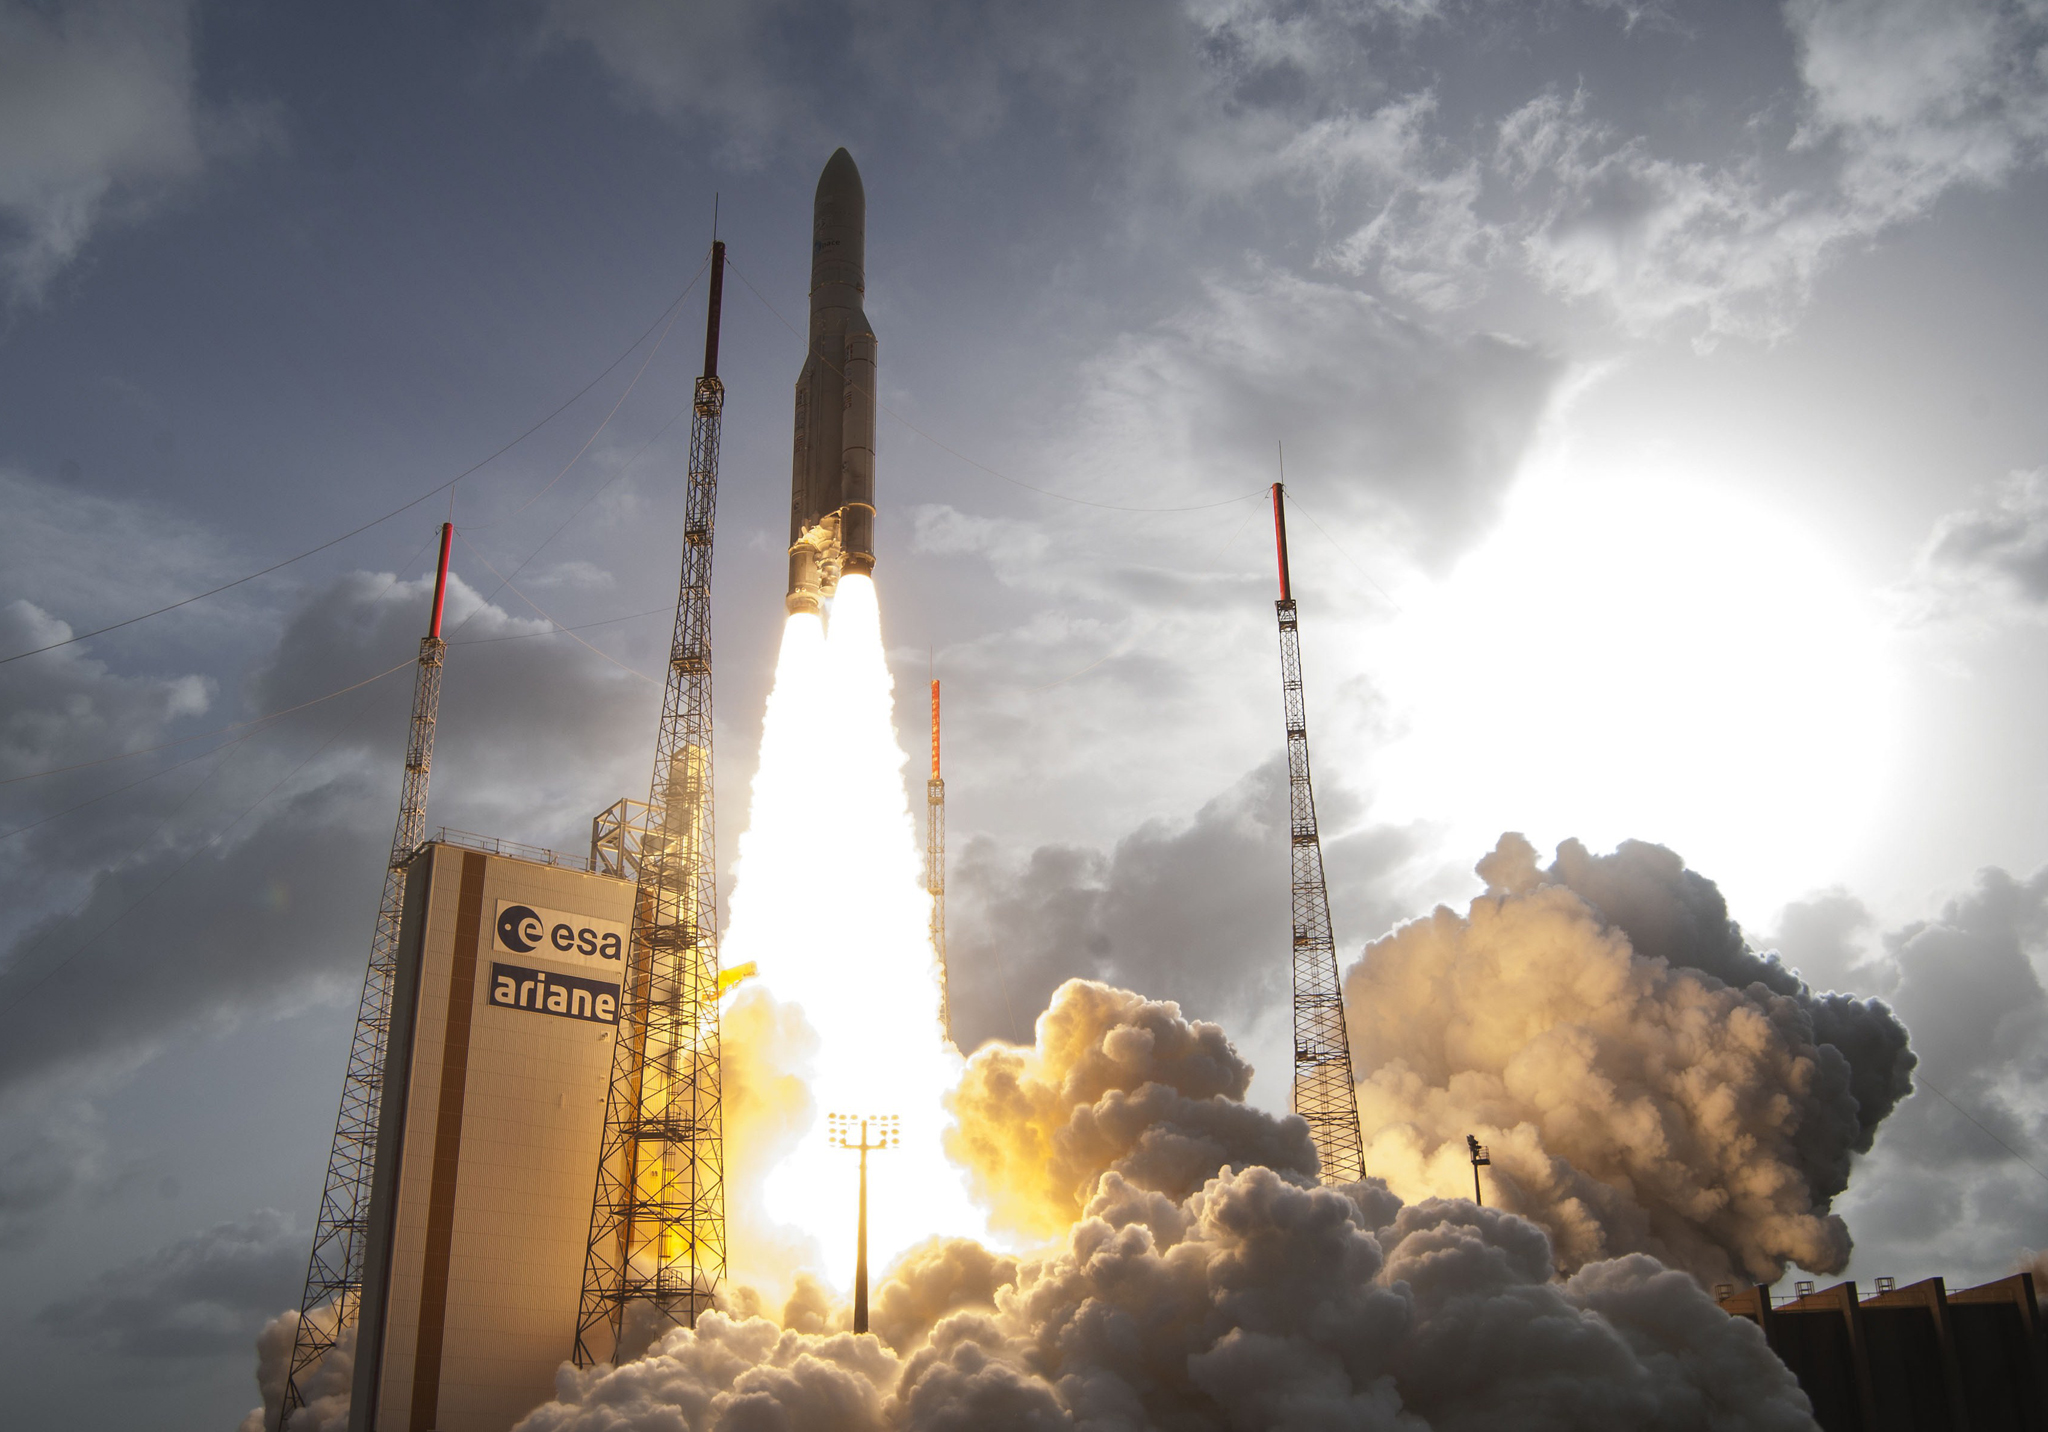 An Ariane 5 rocket lifts off from its launch pad in Kourou, French Guiana, carrying a satellite for Norwegian broadcast and broadband operator Telenor Satellite Broadcasting and a French-Italian military telecommunication satellite.